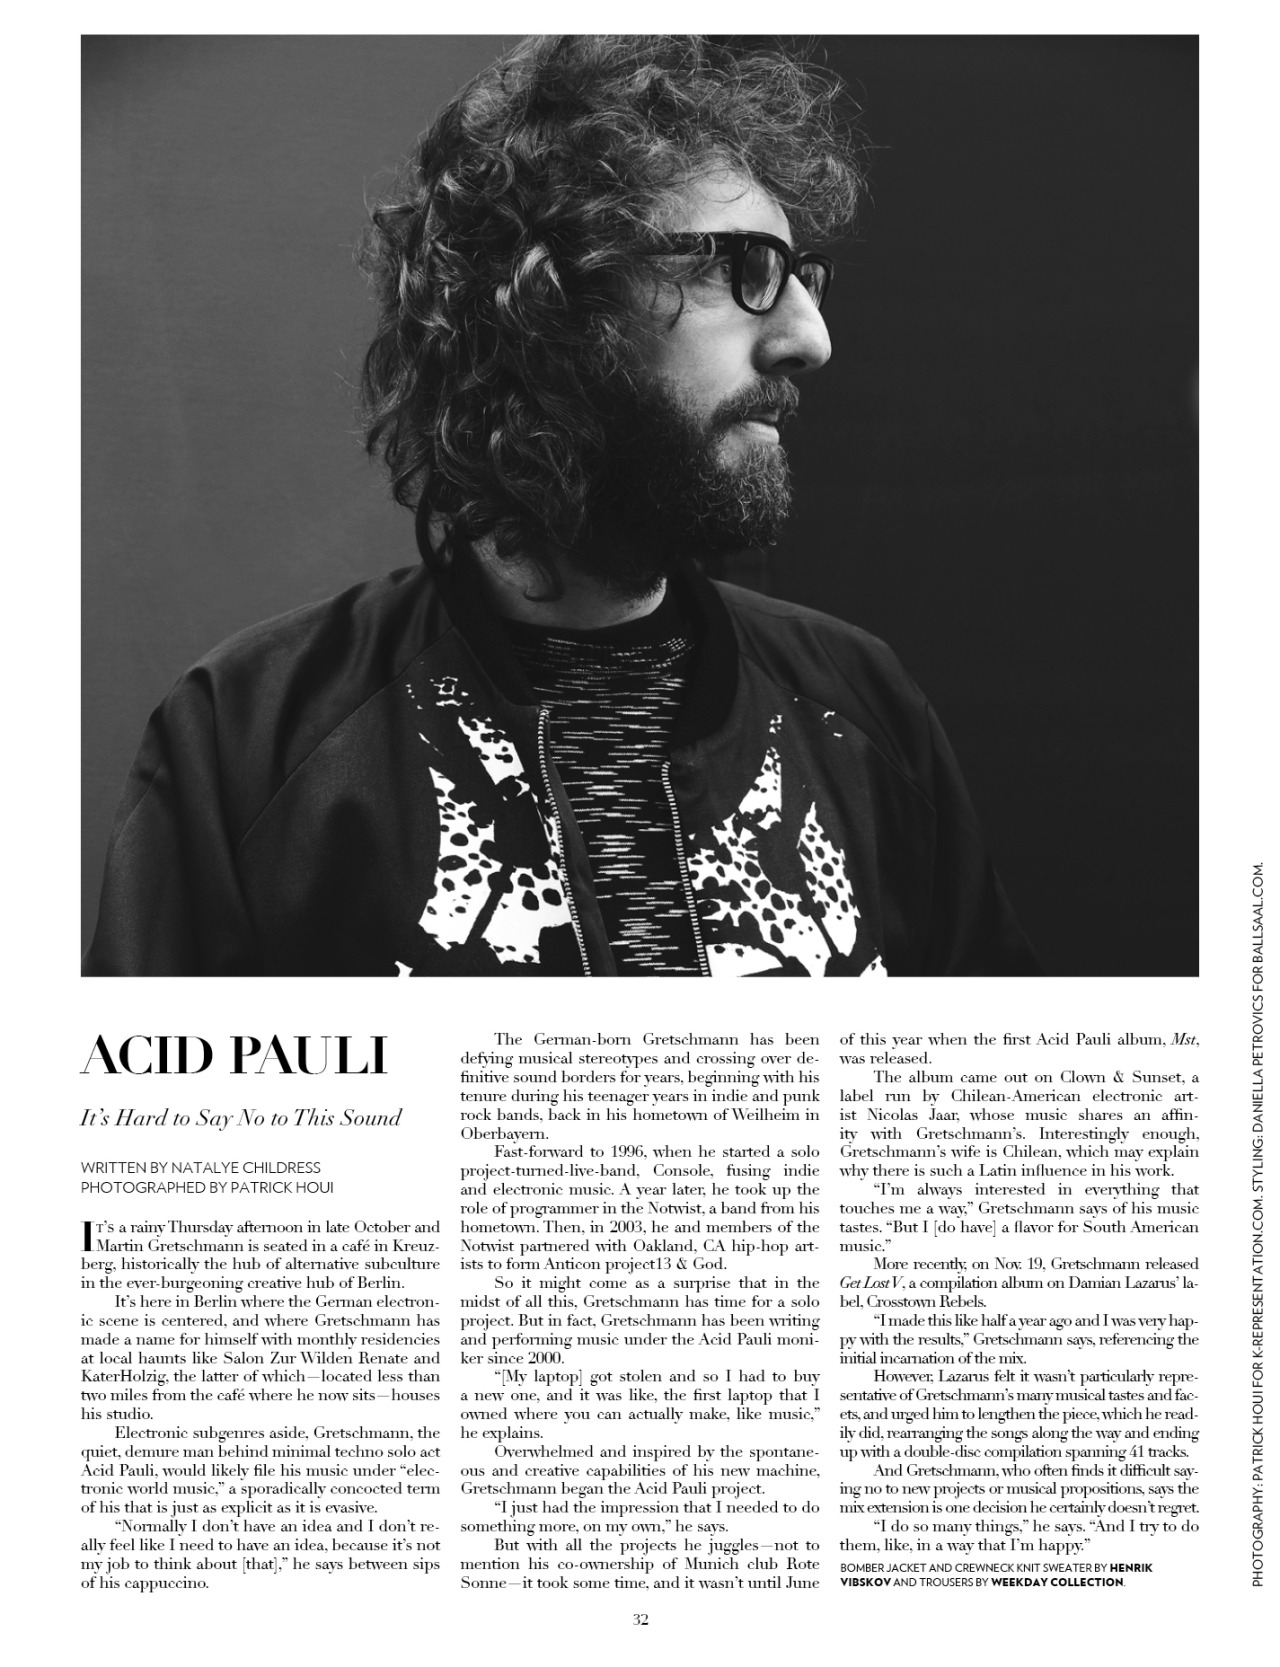 """FLAUNT MAGAZINE   Acid Pauli - It's Hard to Say No to This Sound     It's a rainy Thursday afternoon in late October and Martin Gretschmann is seated in a café in Kreuzberg, historically the center of alternative subculture in the ever-burgeoning creative hub of Berlin.     It's here in Berlin where the German electronic scene is centered, and where Gretschmann has made name for himself with monthly residencies at local haunts like Salon Zur Wilden Renate and KaterHolzig, the latter of which–located less than two miles away from the café where he now sits–houses his studio.     Electronic subgenres aside, Gretschmann, the quiet, demure man behind minimal techno solo act Acid Pauli, would likely file his music under """"electronic world music,"""" a sporadically concocted term of his that is just as explicit as it is evasive.     """"Normally I don't have an idea and I don't really feel like I need to have an idea, because it's not my job to think about [that],"""" he said between sips of his cappuccino.       The German-born Gretschmann has been defying musical stereotypes and crossing over definitive sound borders for years, beginning with his tenure during the teenager years in indie and punk rock bands, back in his hometown of Weilheim in Oberbayern.       Fast-forward to 1996, when he started a solo project-turned-live-band, Console, fusing indie and electronic music. A year later, he took up the role of programmer in the Notwist, a band from his hometown. Then, in 2003, he and members of the Notwist partnered with Oakland, Calif. hip-hop artists to form Anticon project 13 & God.     So it might come as a surprise that in the midst of all this, Gretschmann has time for a solo project. But in fact, Gretschmann has been writing and performing music under the Acid Pauli moniker since 2000.     """"[My laptop] got stolen and so I had to buy a new one, and it was like, the first laptop that I owned where you can actually make, like music,"""" he explained.     Overwhelmed and inspired"""